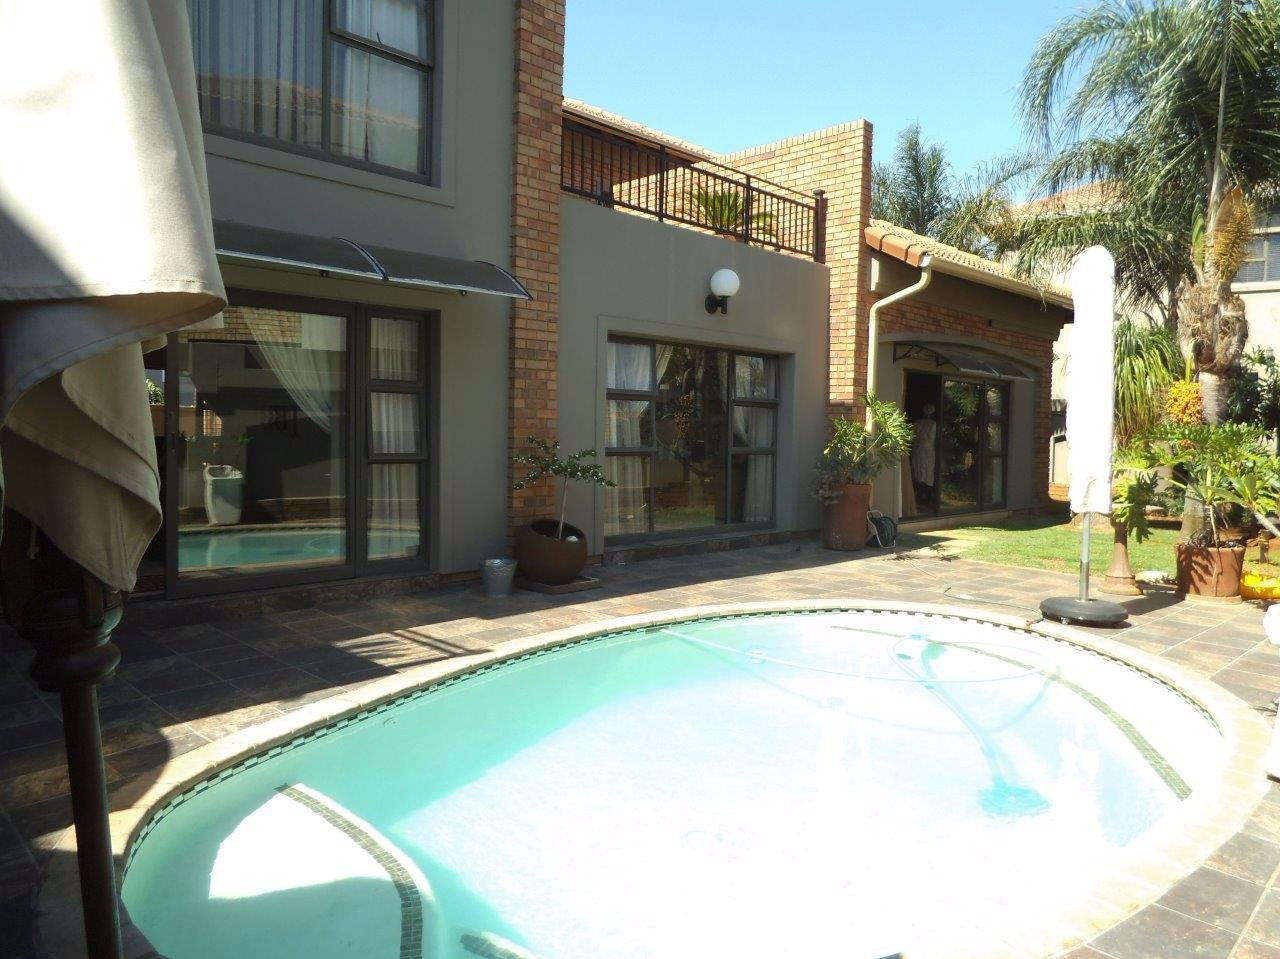 Alberton, Meyersdal Property  | Houses For Sale Meyersdal, Meyersdal, House 4 bedrooms property for sale Price:5,950,000